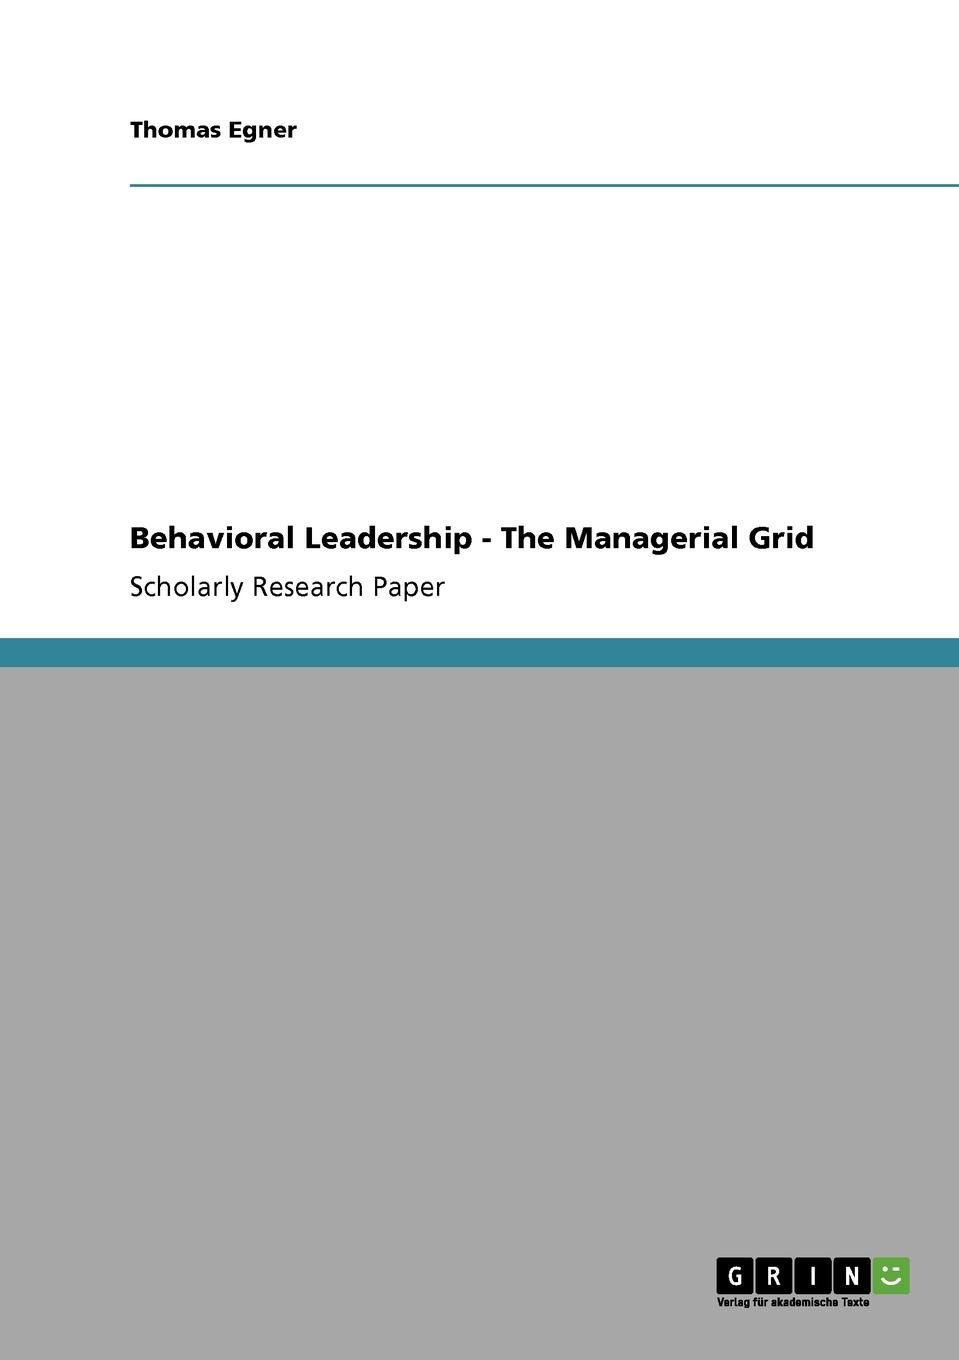 Behavioral Leadership - The Managerial Grid Research Paper (undergraduate) from the year 2009 in the subject...